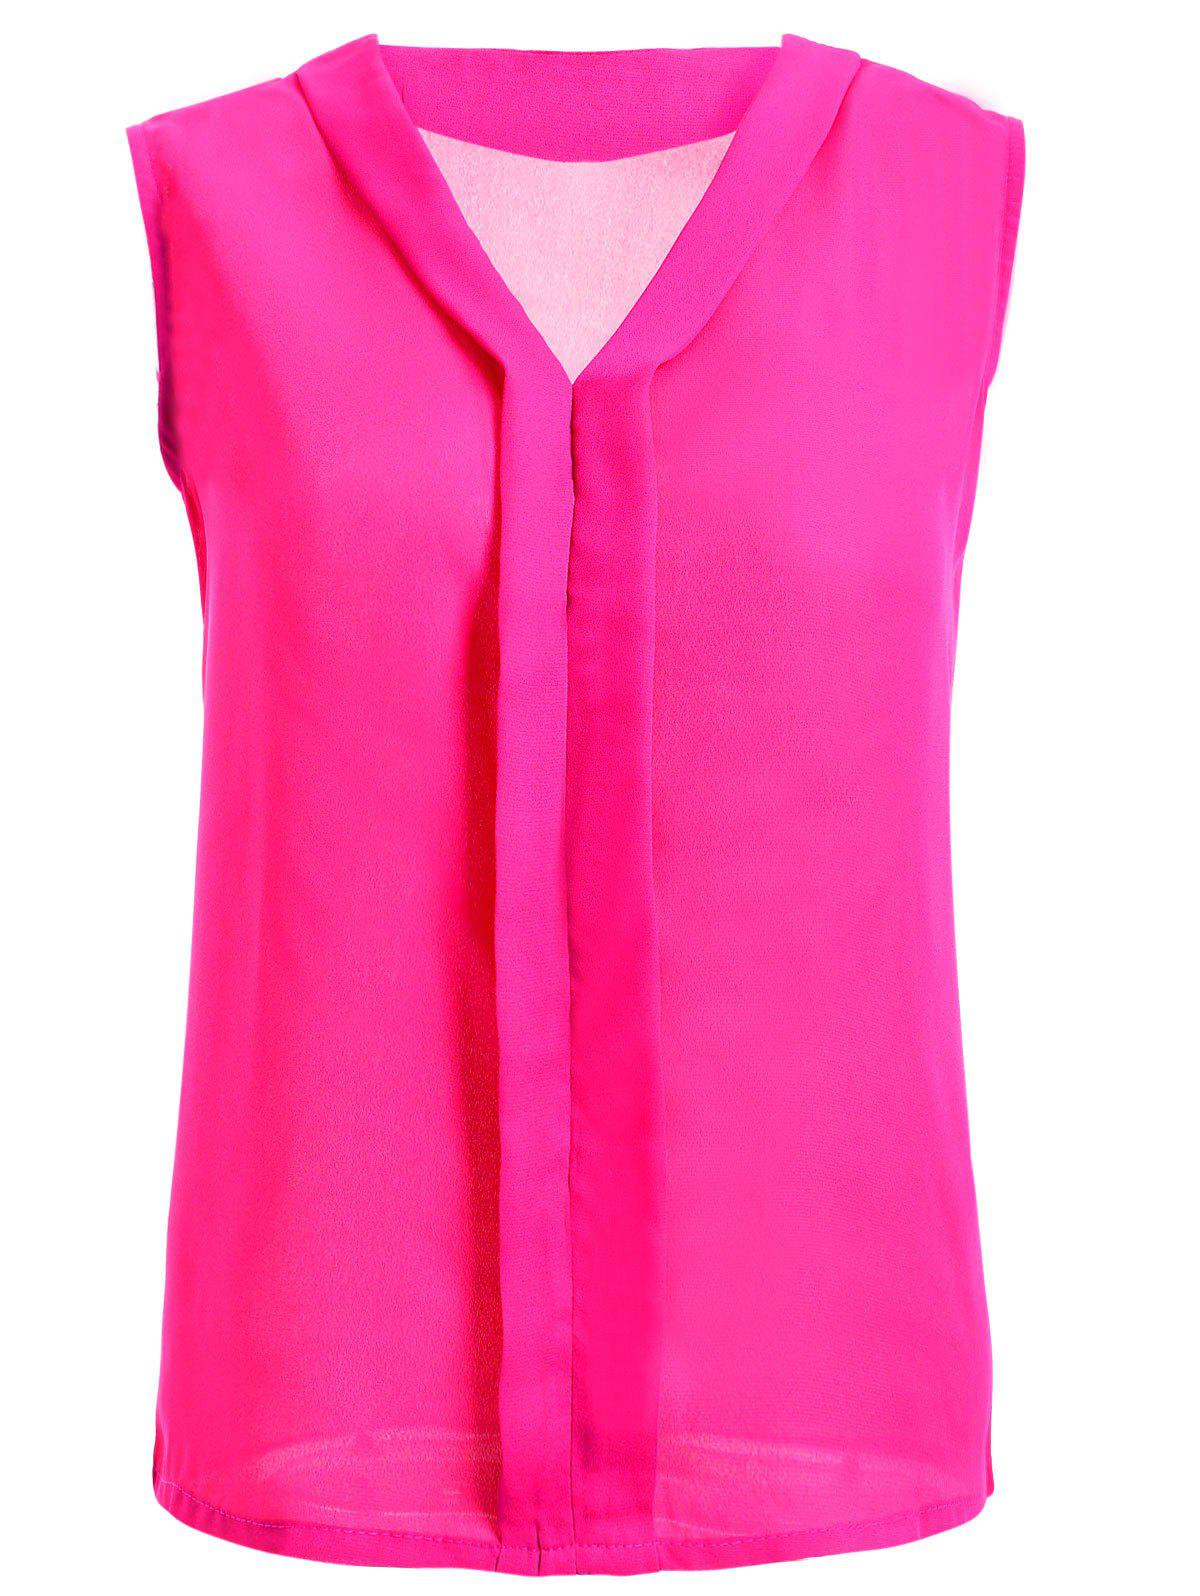 V-Neck Solid Color Women's Chiffon Tank Top - ROSE RED 2XL